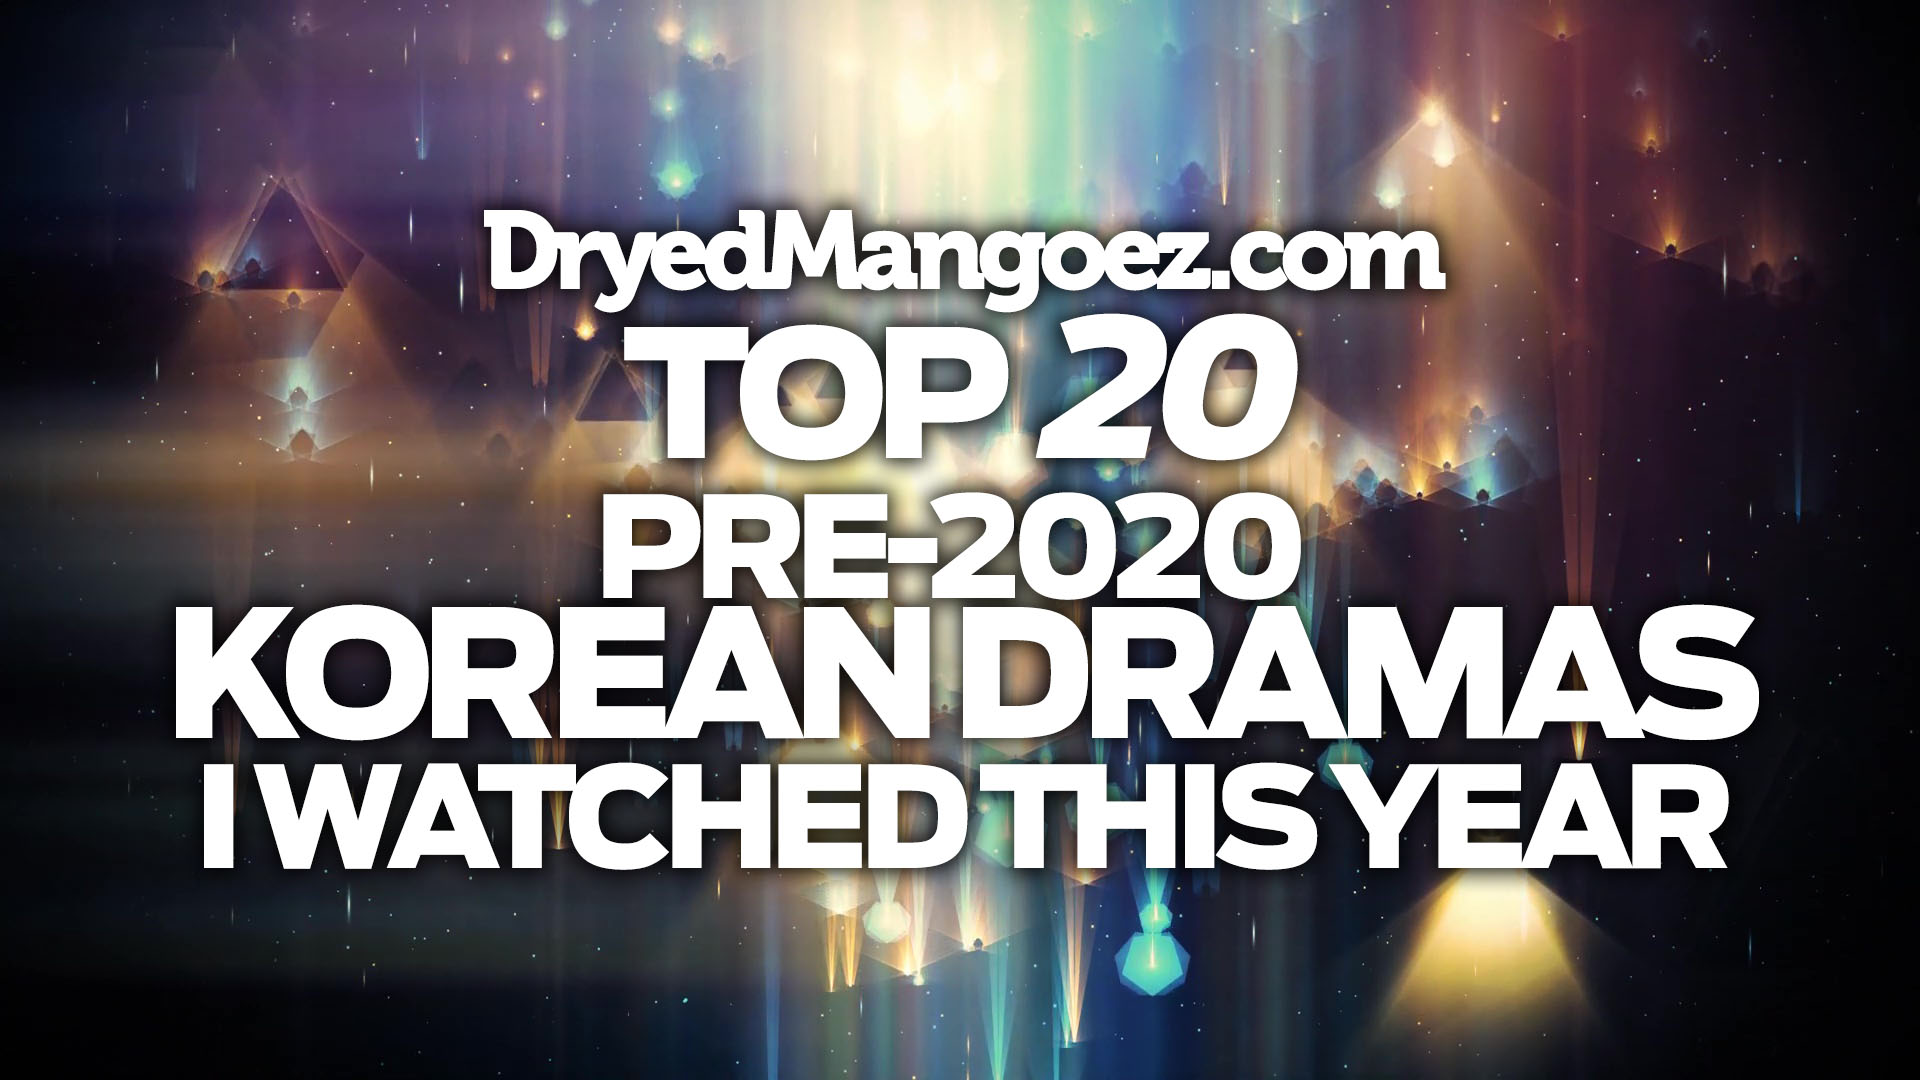 Top 20 Pre-2020 Korean Dramas I Watched This Year!